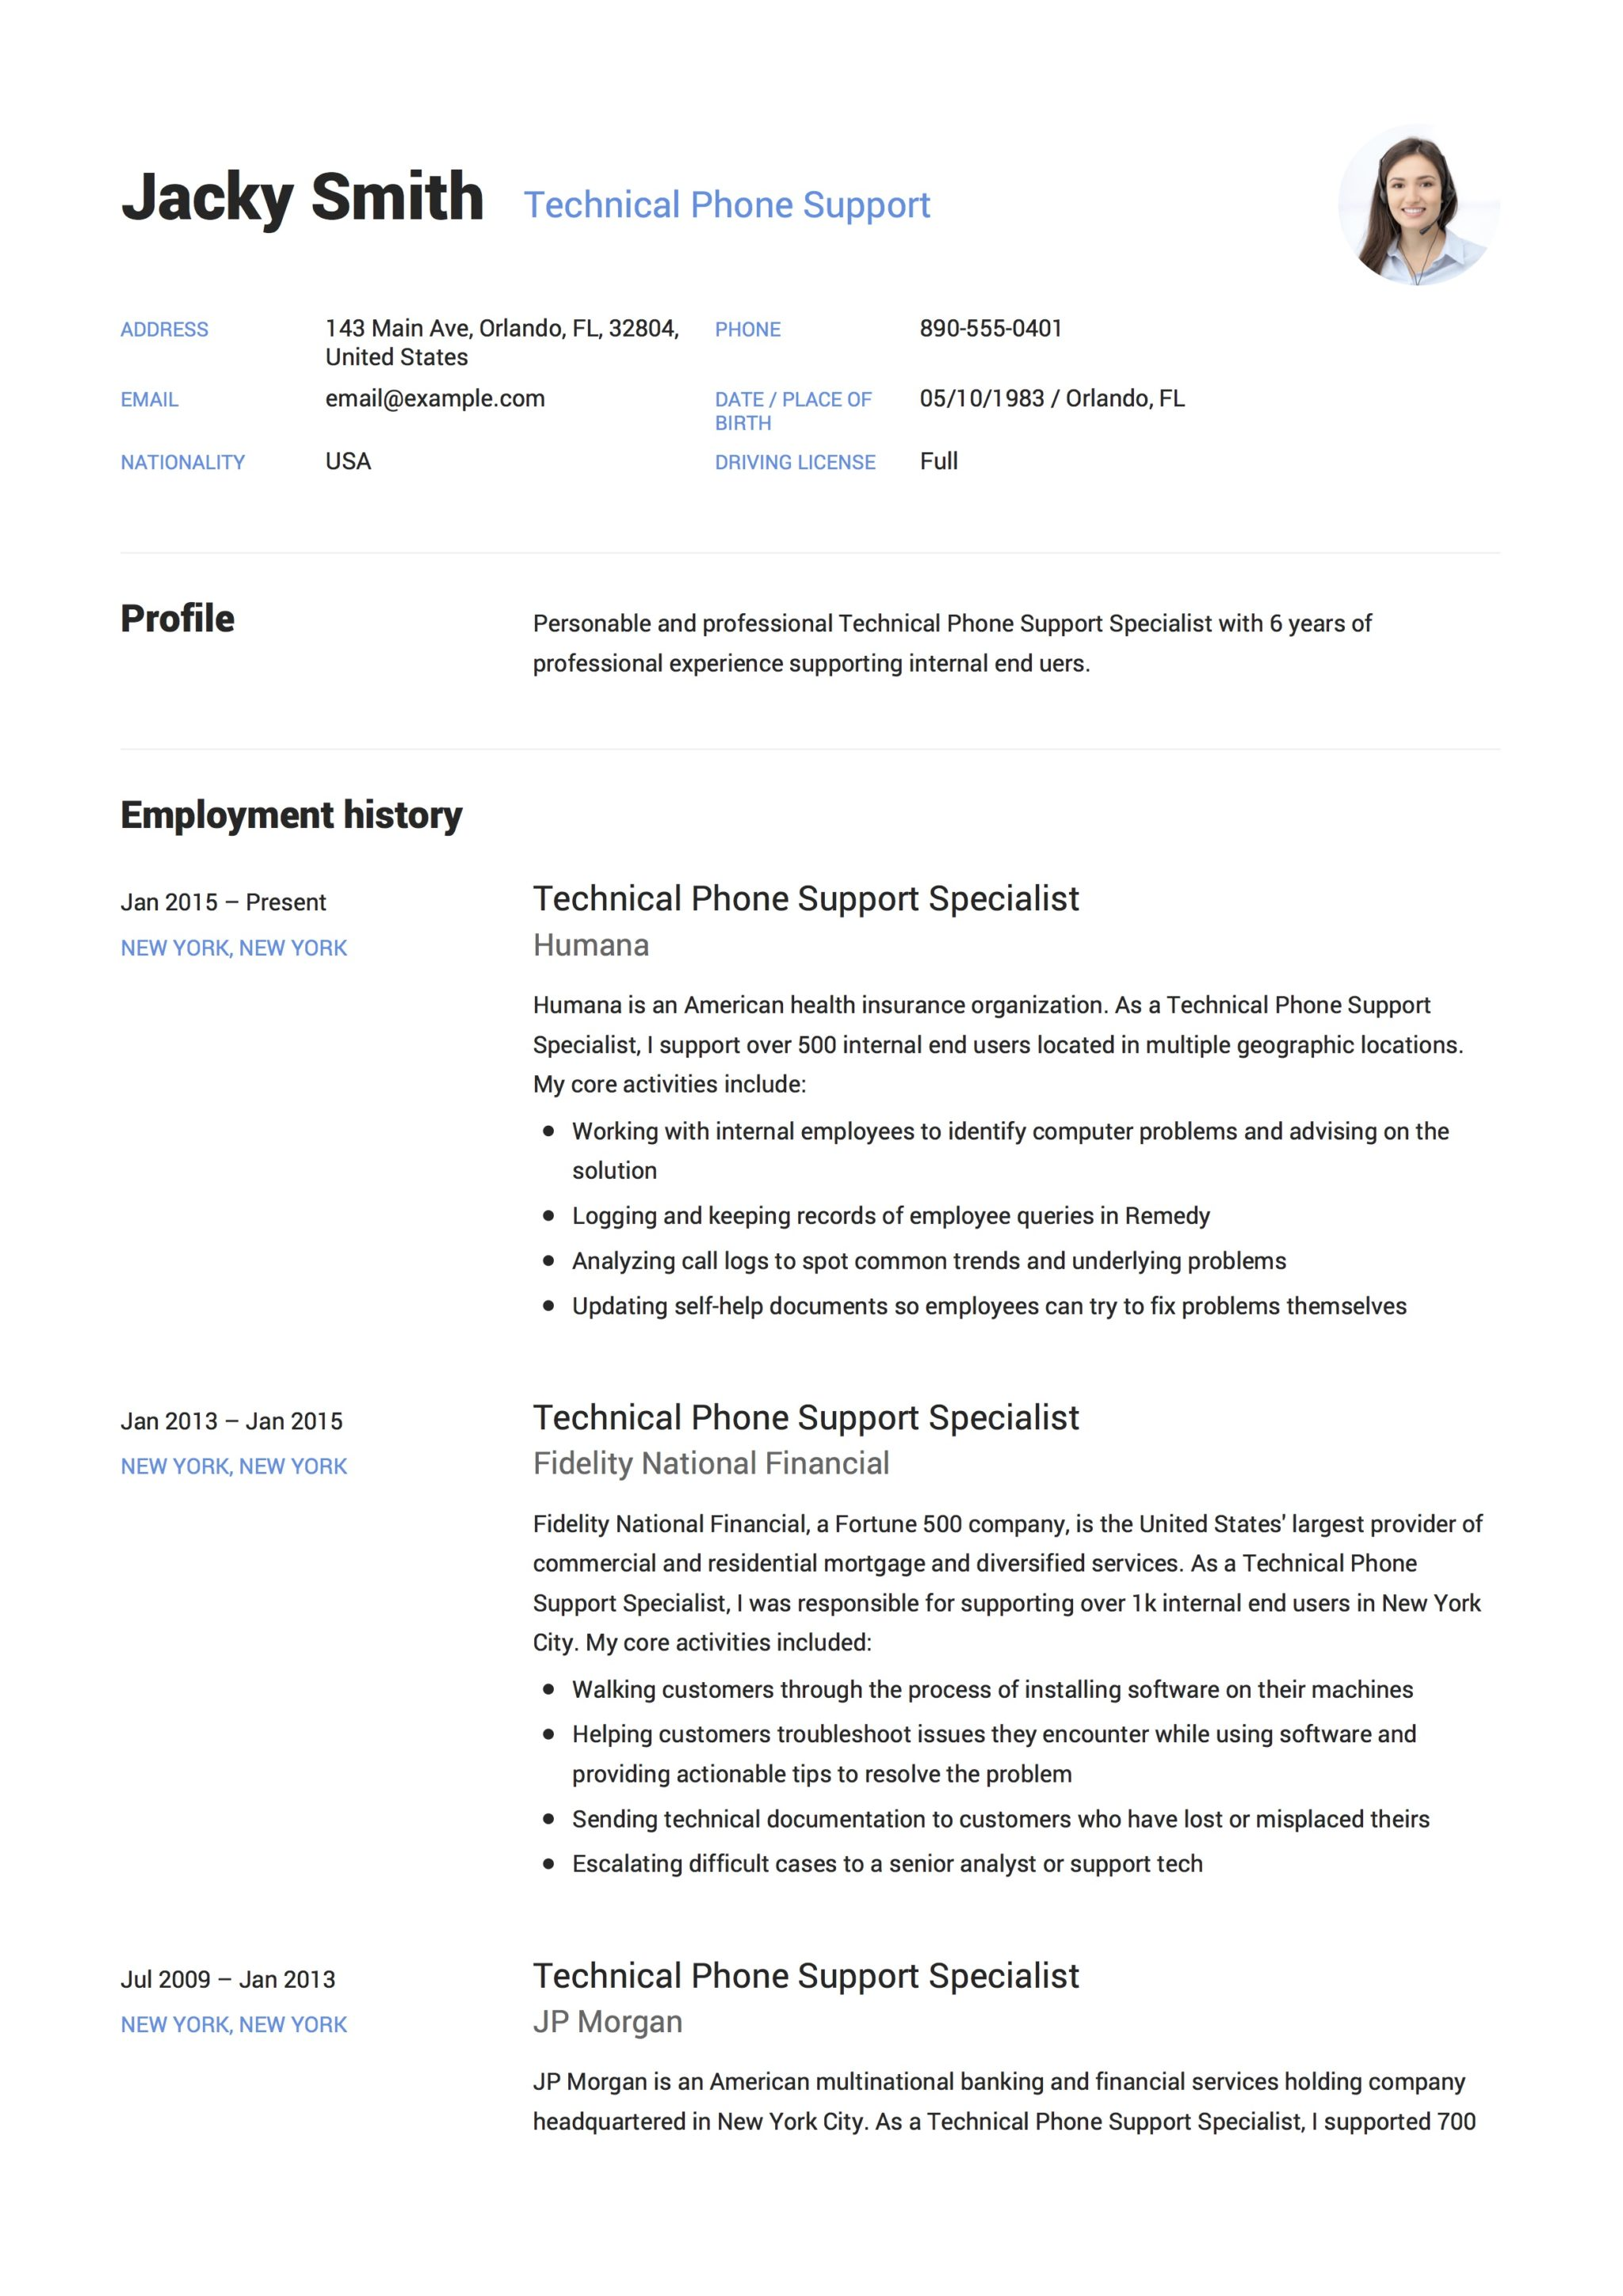 Technical Support Resume Sample 12 Technical Phone Support Resume Sample S 2018 Free